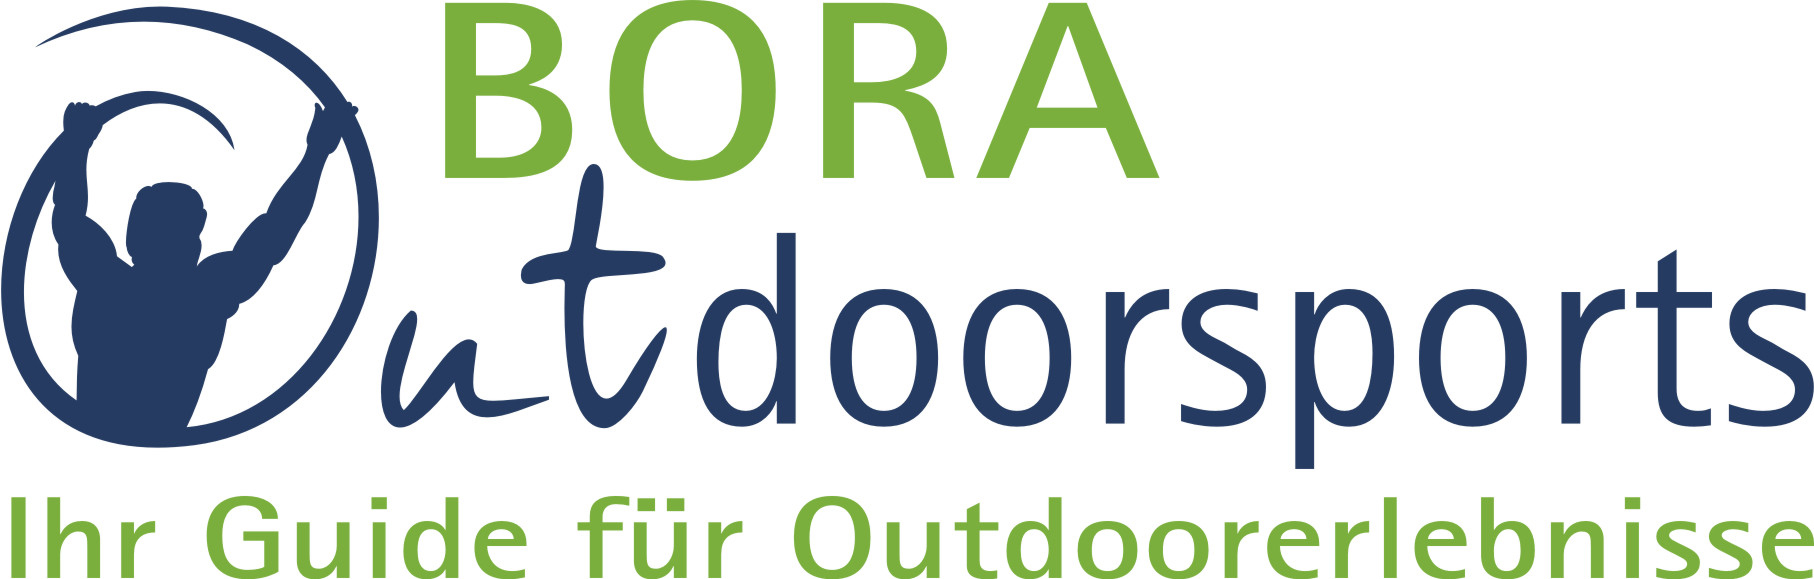 BORA Outdoorsports